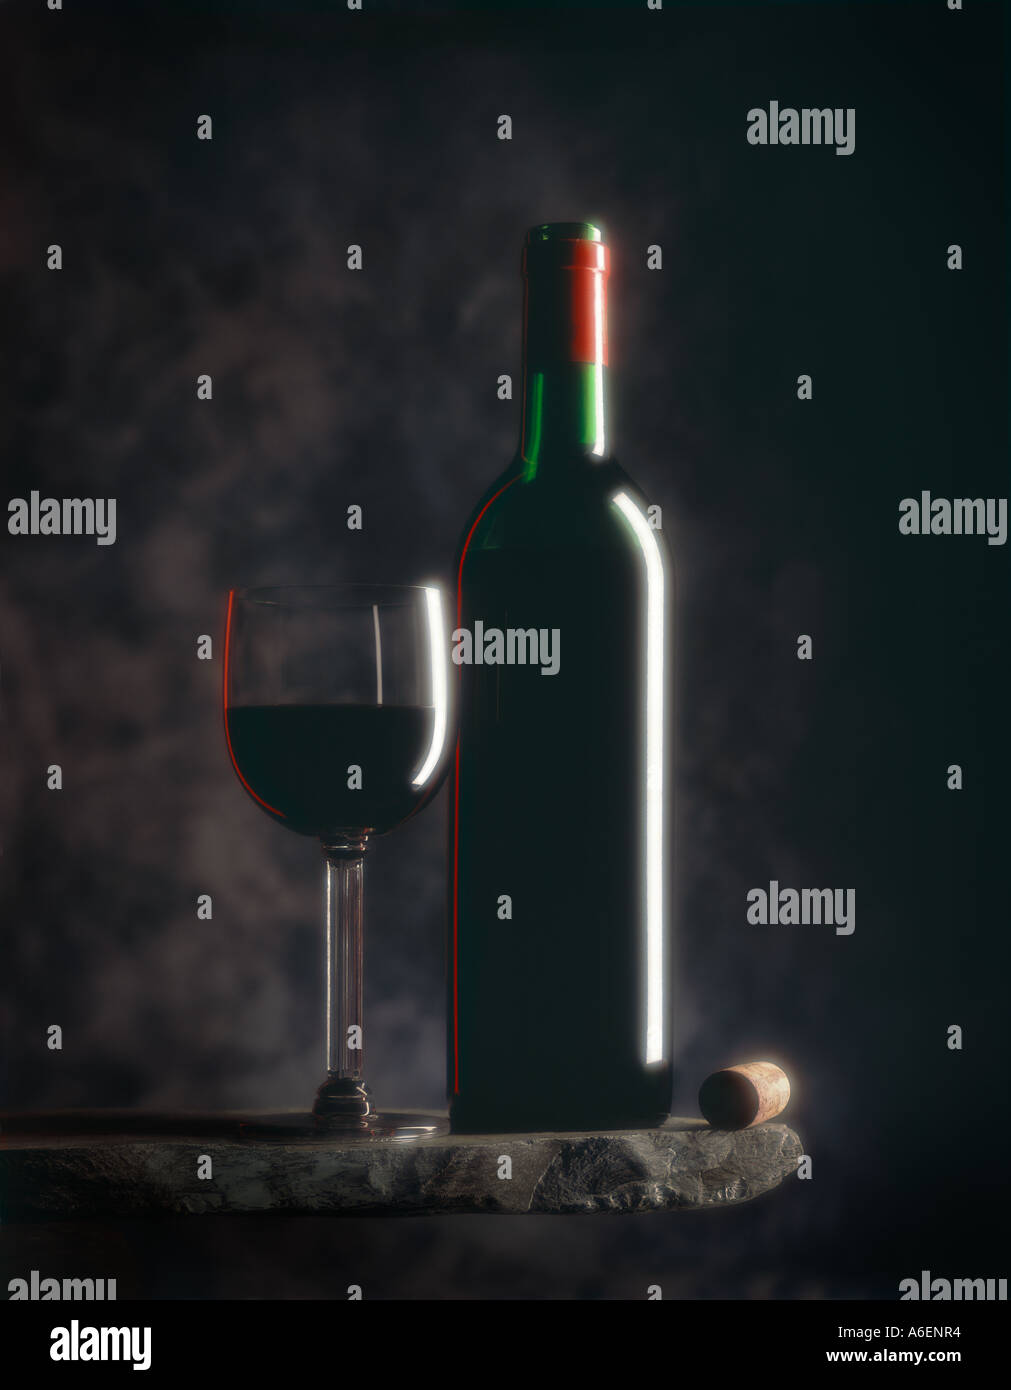 Still life photograph of Red Wine Bottle and Glass - Stock Image